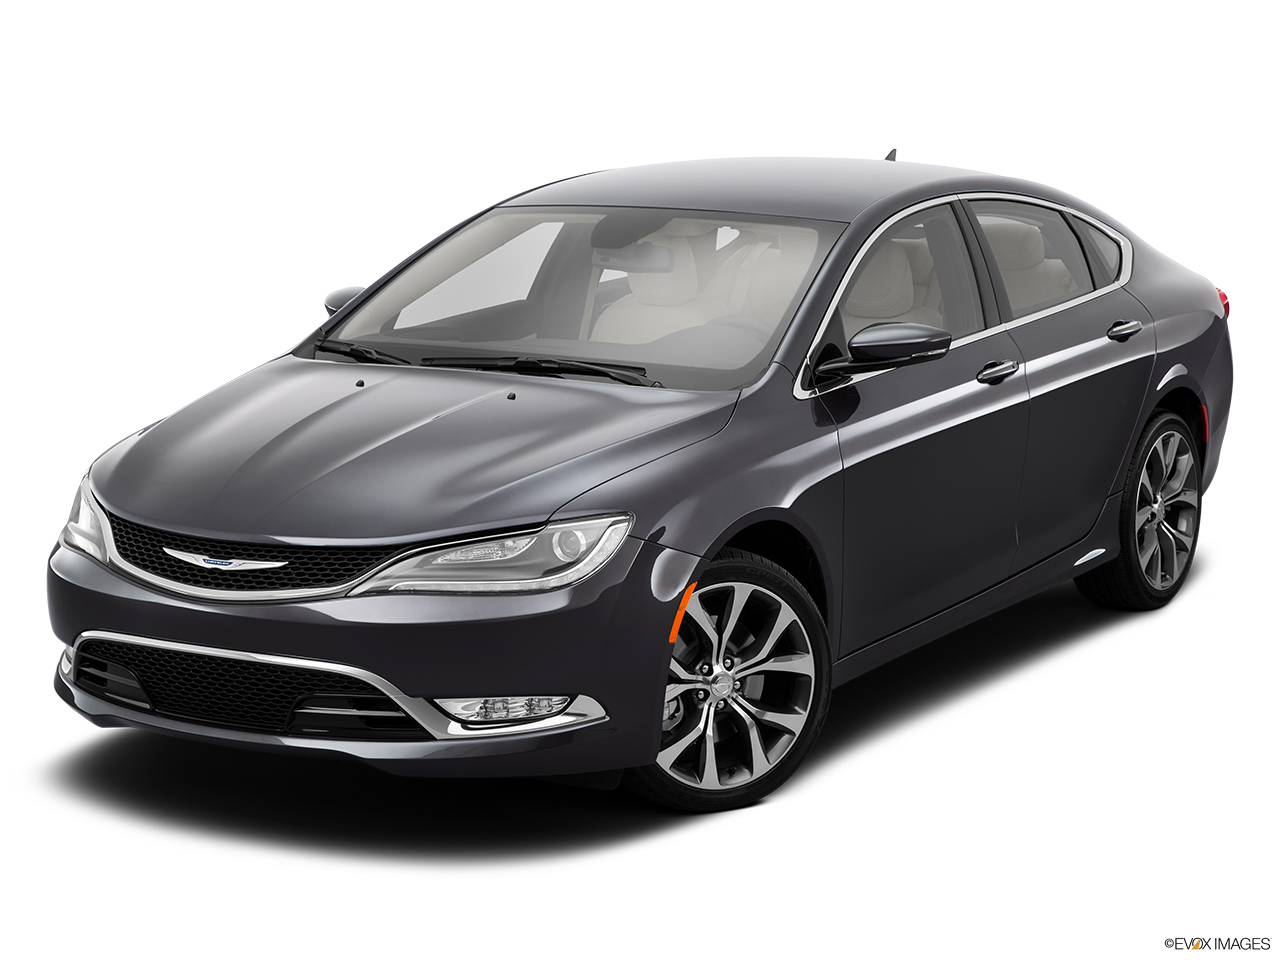 2015 chrysler 200 c awd sedan. Black Bedroom Furniture Sets. Home Design Ideas